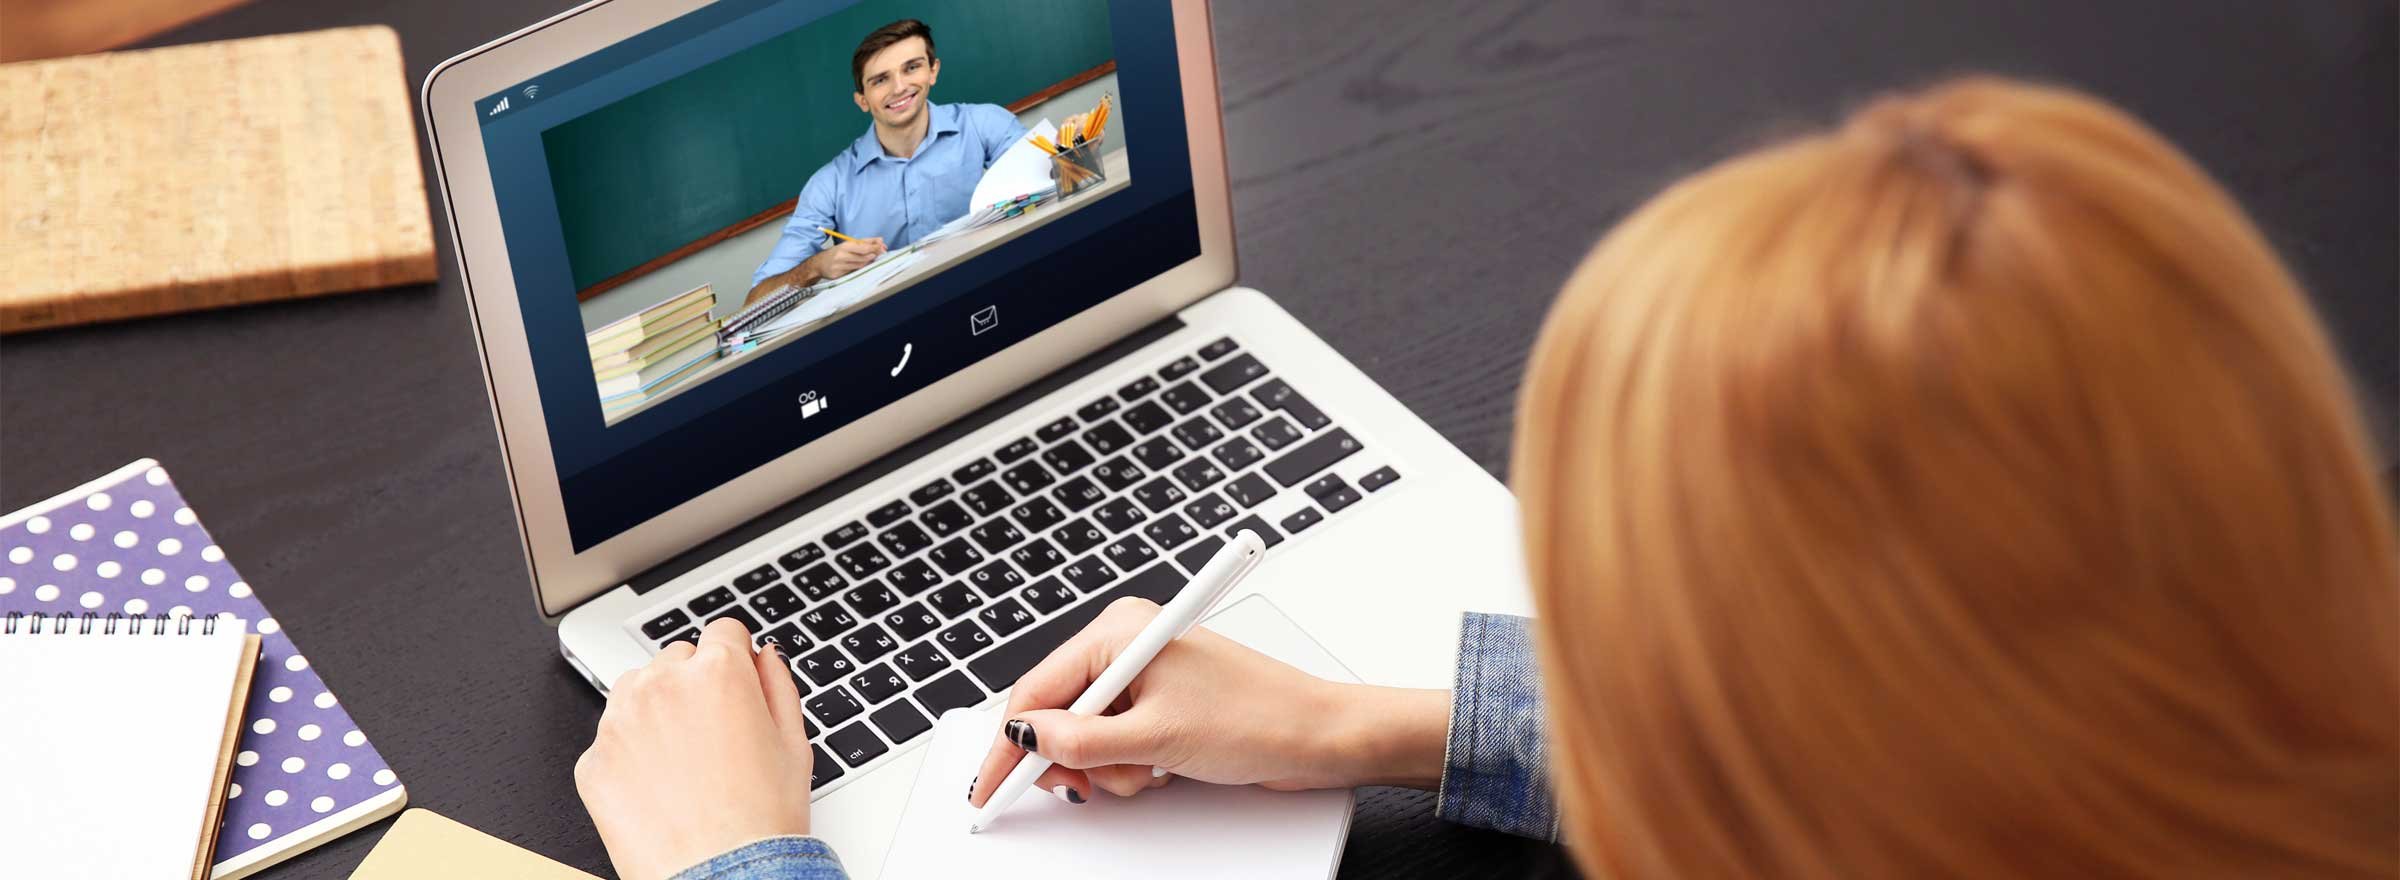 woman having a virtual meeting on a laptop